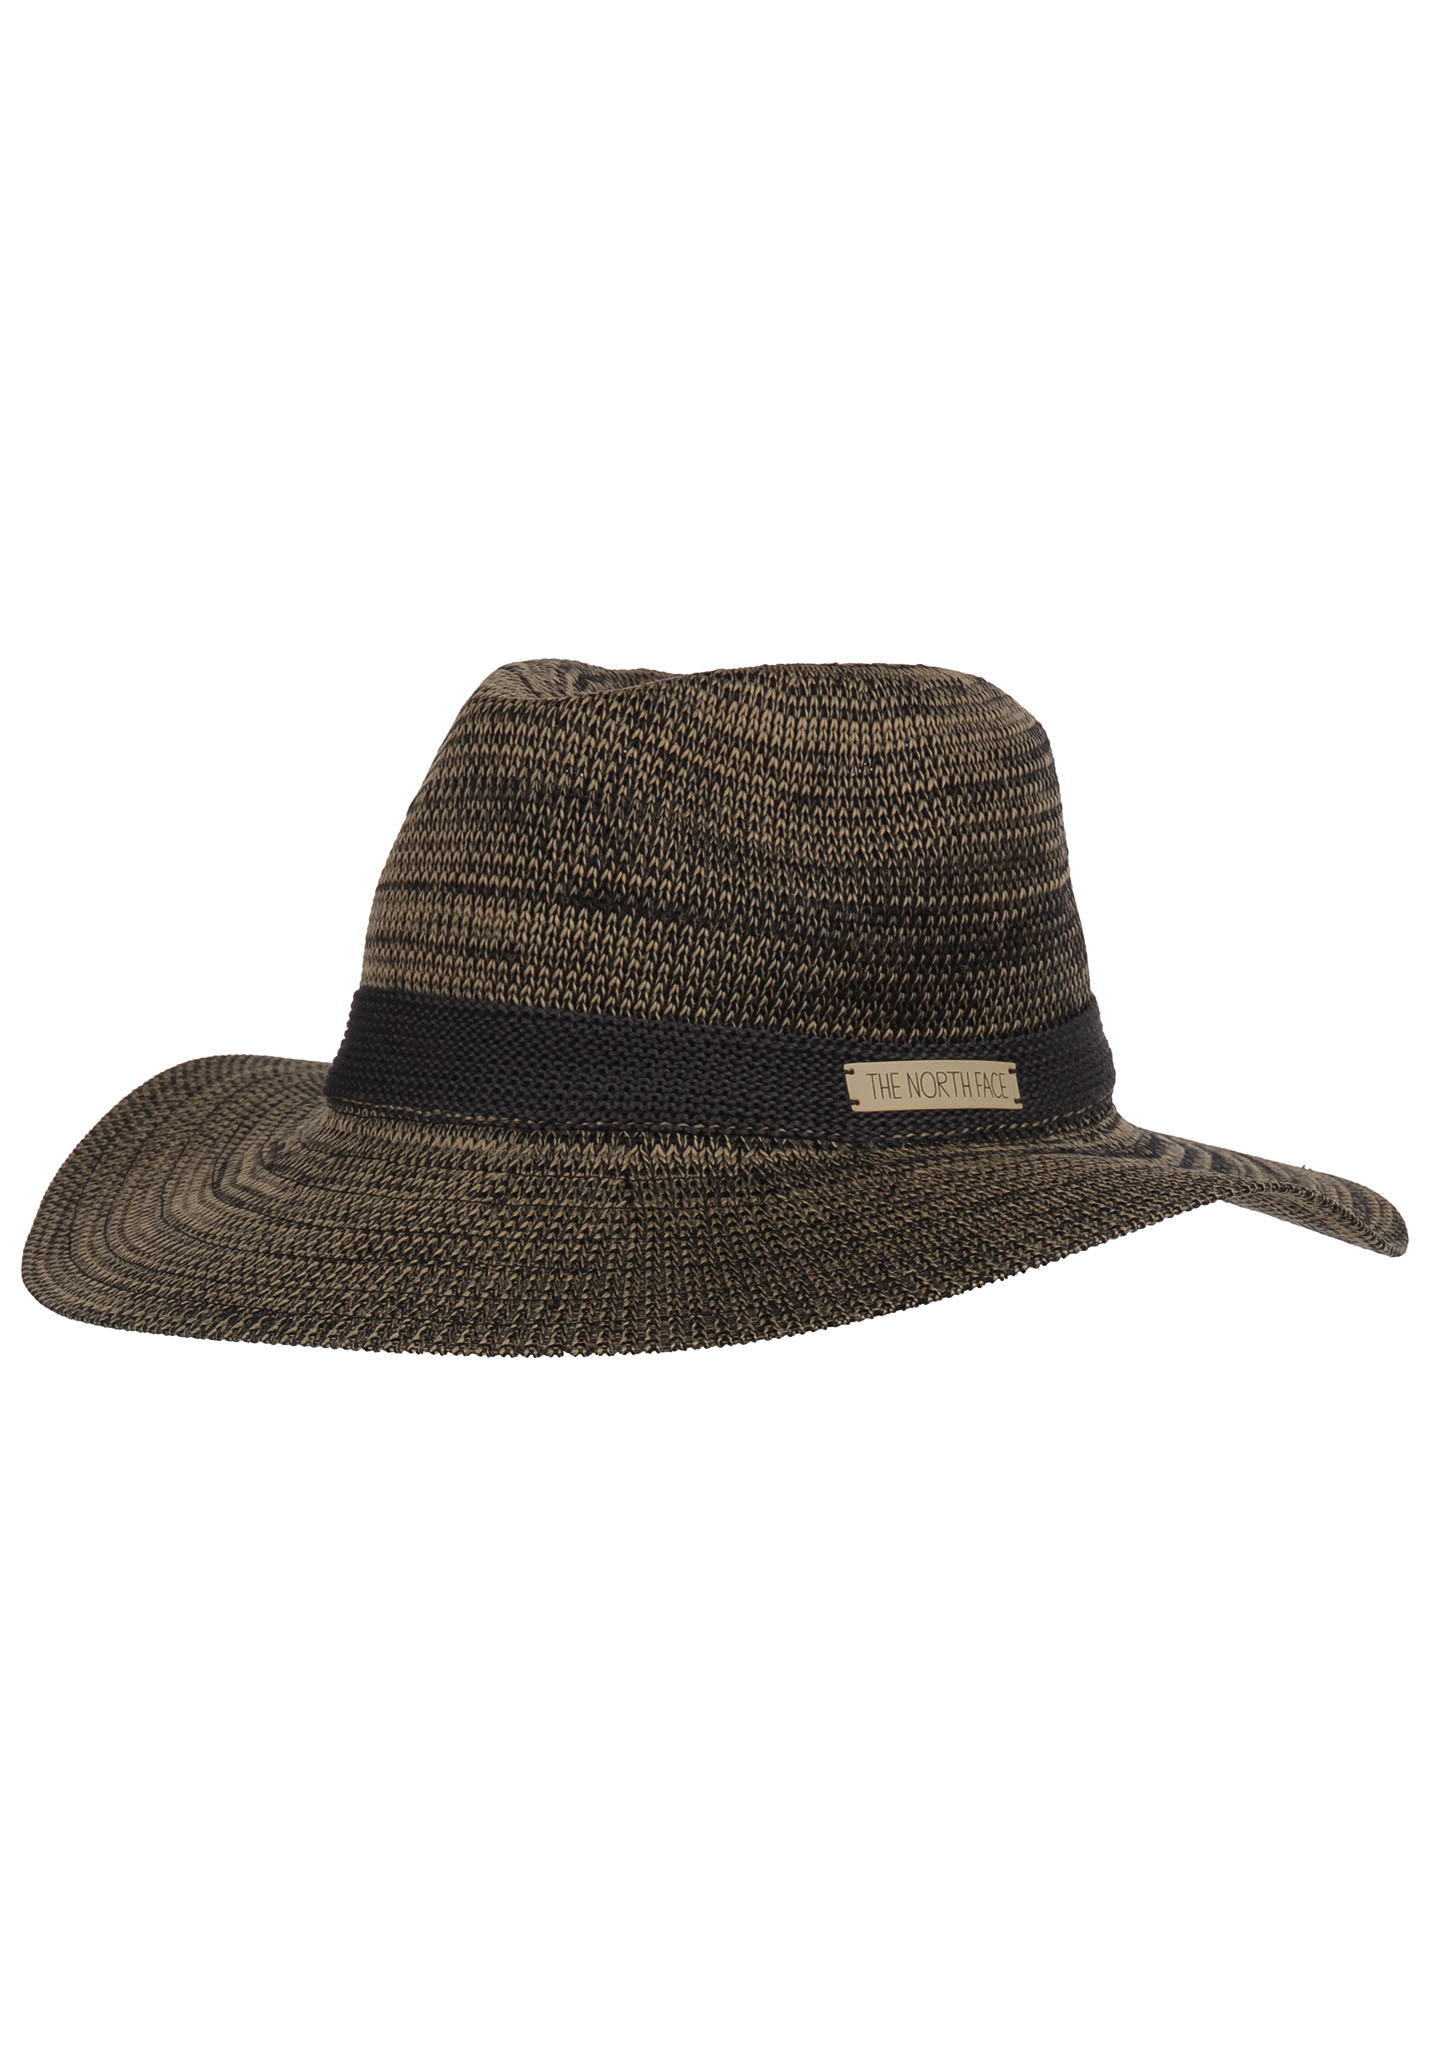 6adb36f2b618a THE NORTH FACE Packable Panama - Hat for Women - Brown - Planet Sports